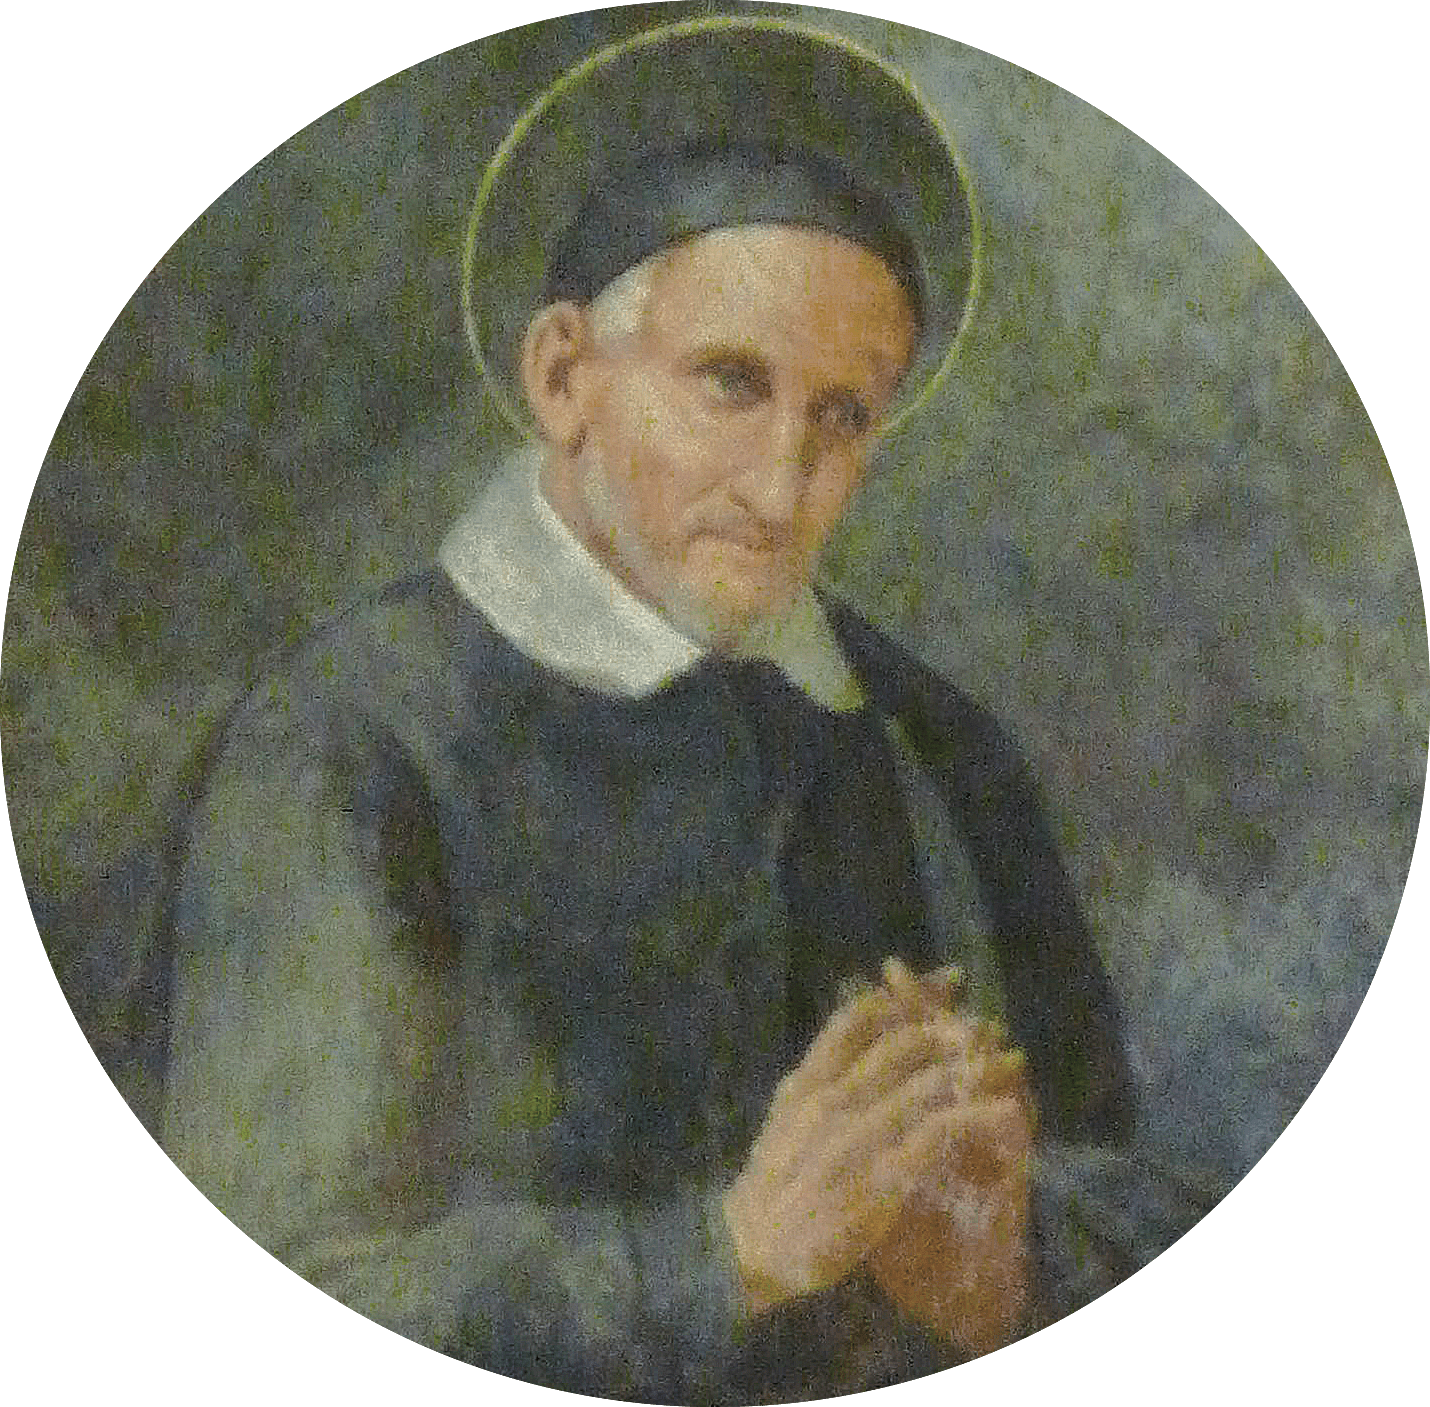 Saint Vincent de Paul (1581-1660)